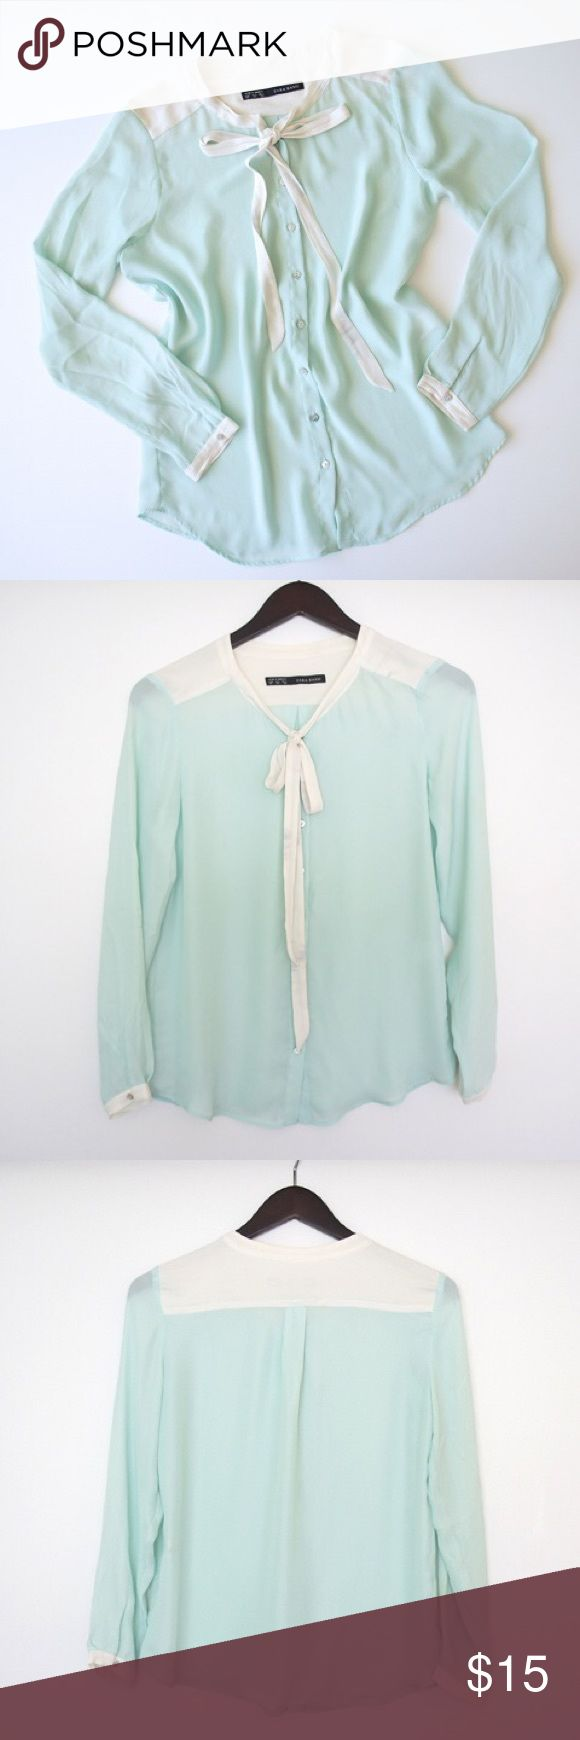 Zara Mint and White Blouse with Bow Pale Mint satin blouse, mother of pearl button front, drapey fit, contrast yoke, cuffs, and bow tie. Some faint streaks on the tie and front left yoke, but they're hard to notice. Zara Tops Blouses